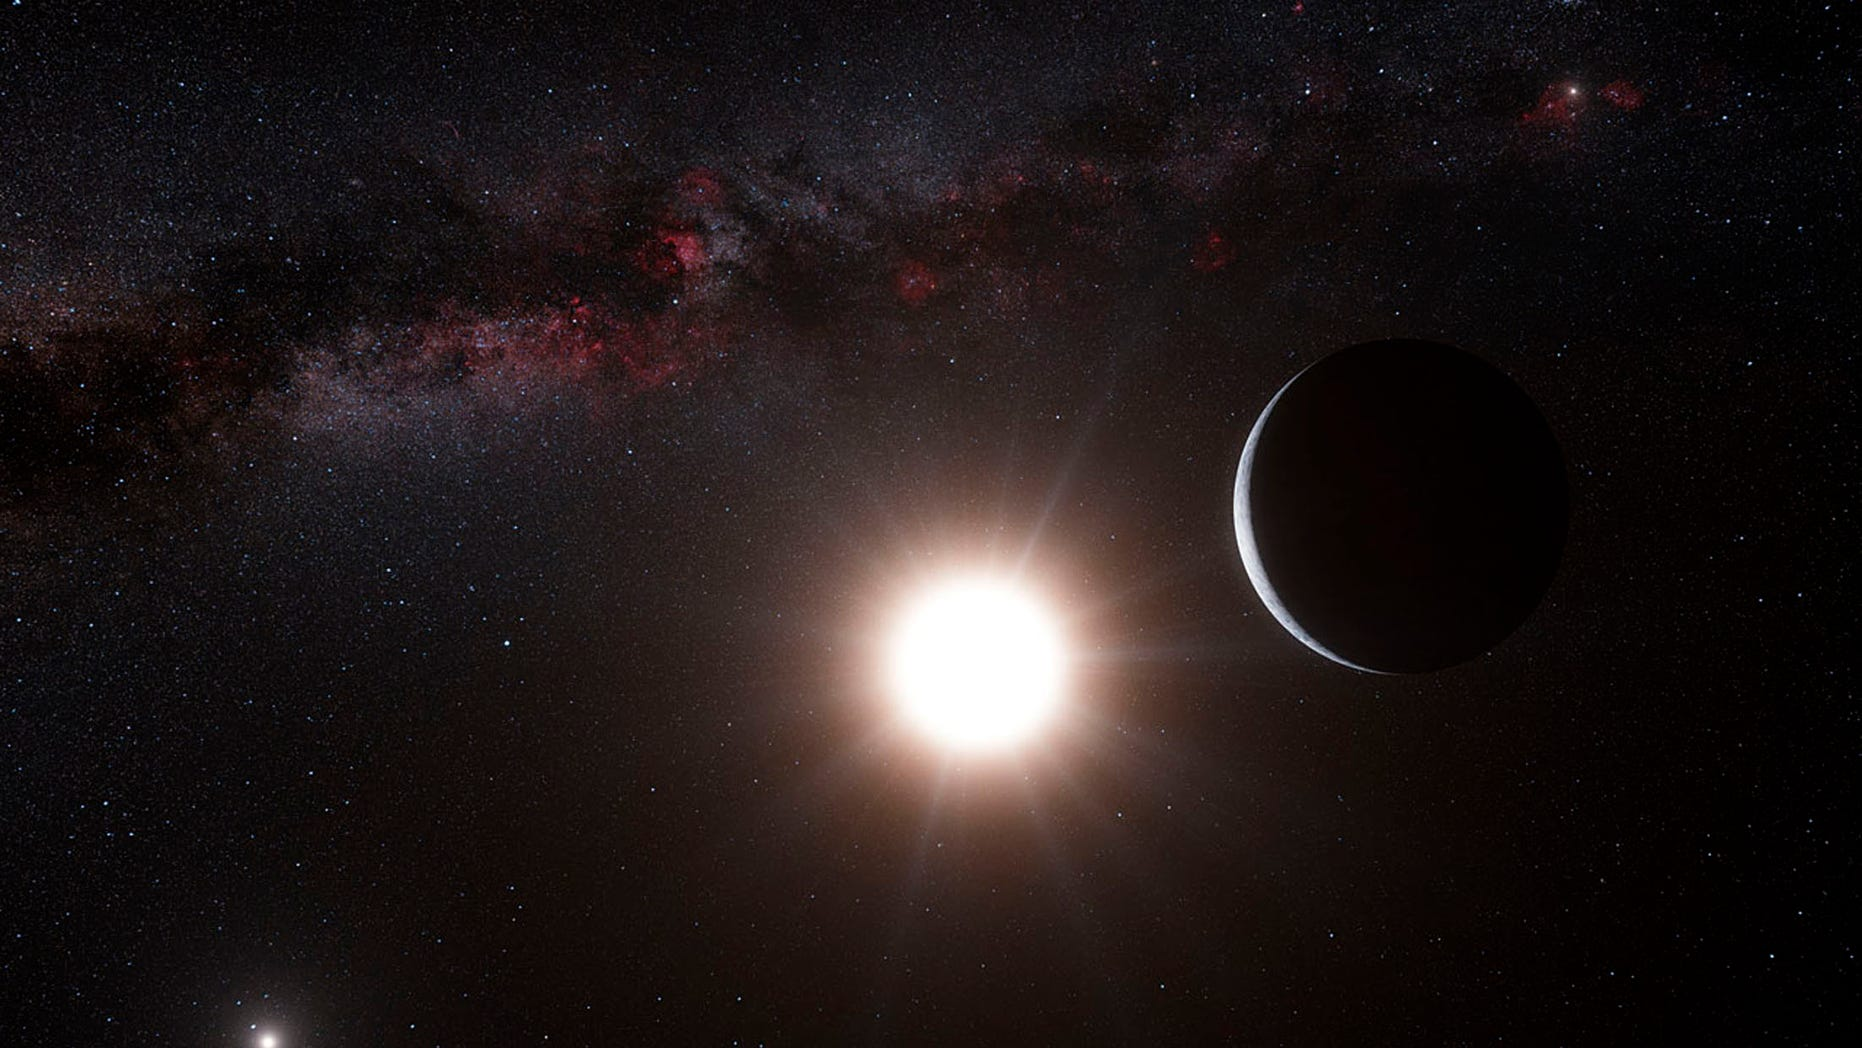 This artist's impression shows the planet orbiting the star Alpha Centauri B, a member of the triple star system that is the closest to Earth in this image released on October 17, 2012. (REUTERS/ESO/L. Calcada/N. Risinger)